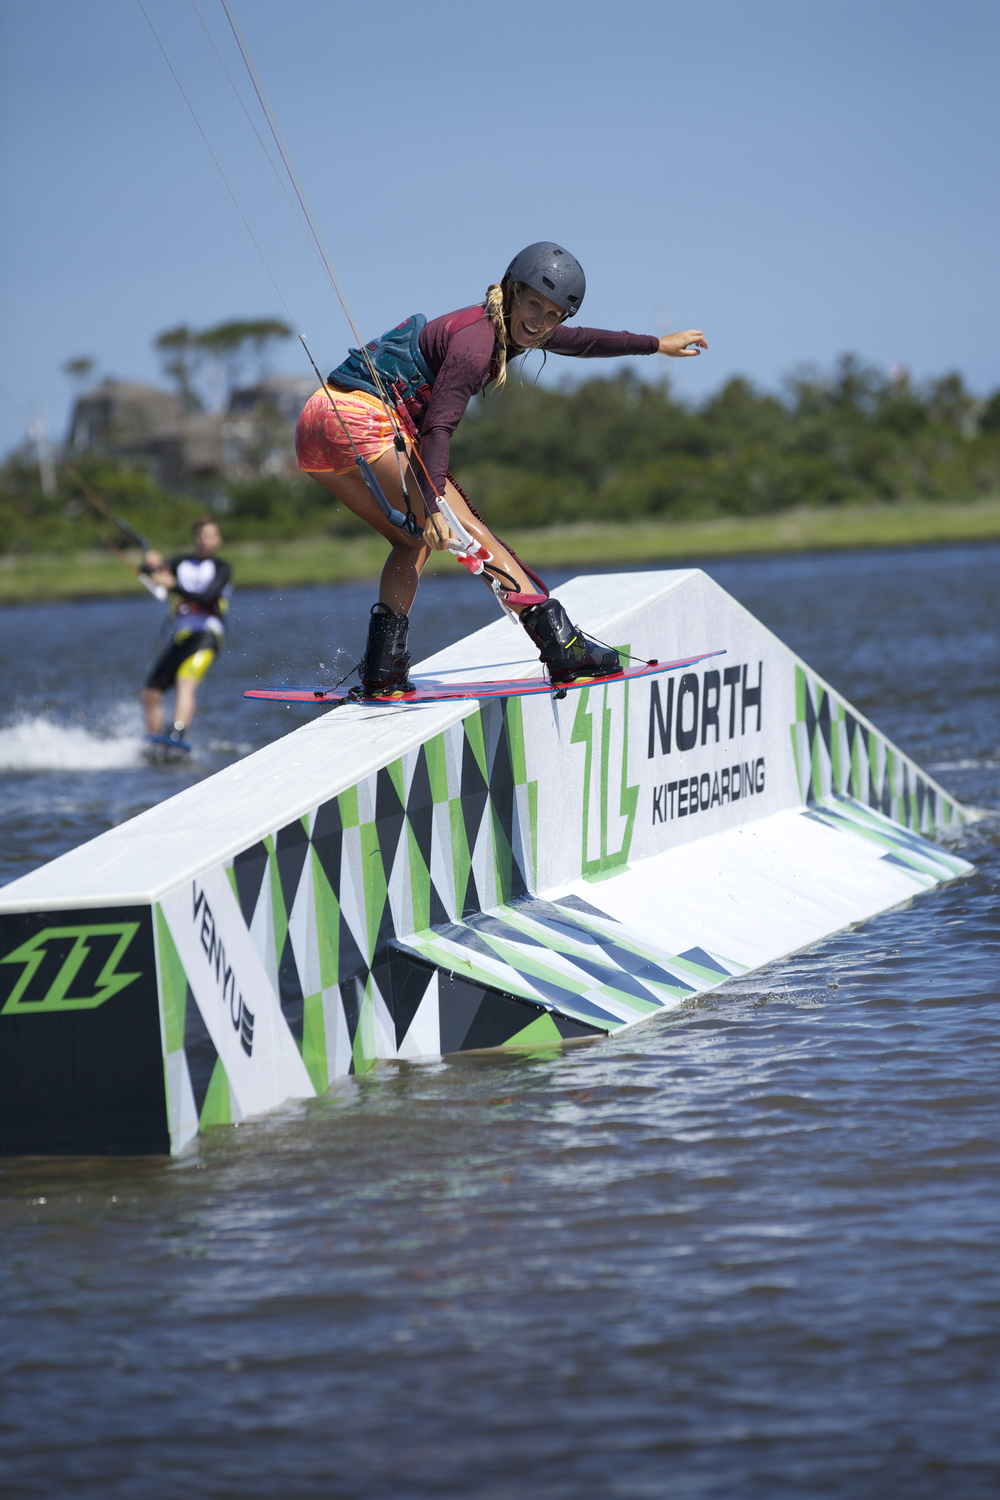 Location: Real Slider Park, Hatteras, North Carolina Photo: Toby Bromwich